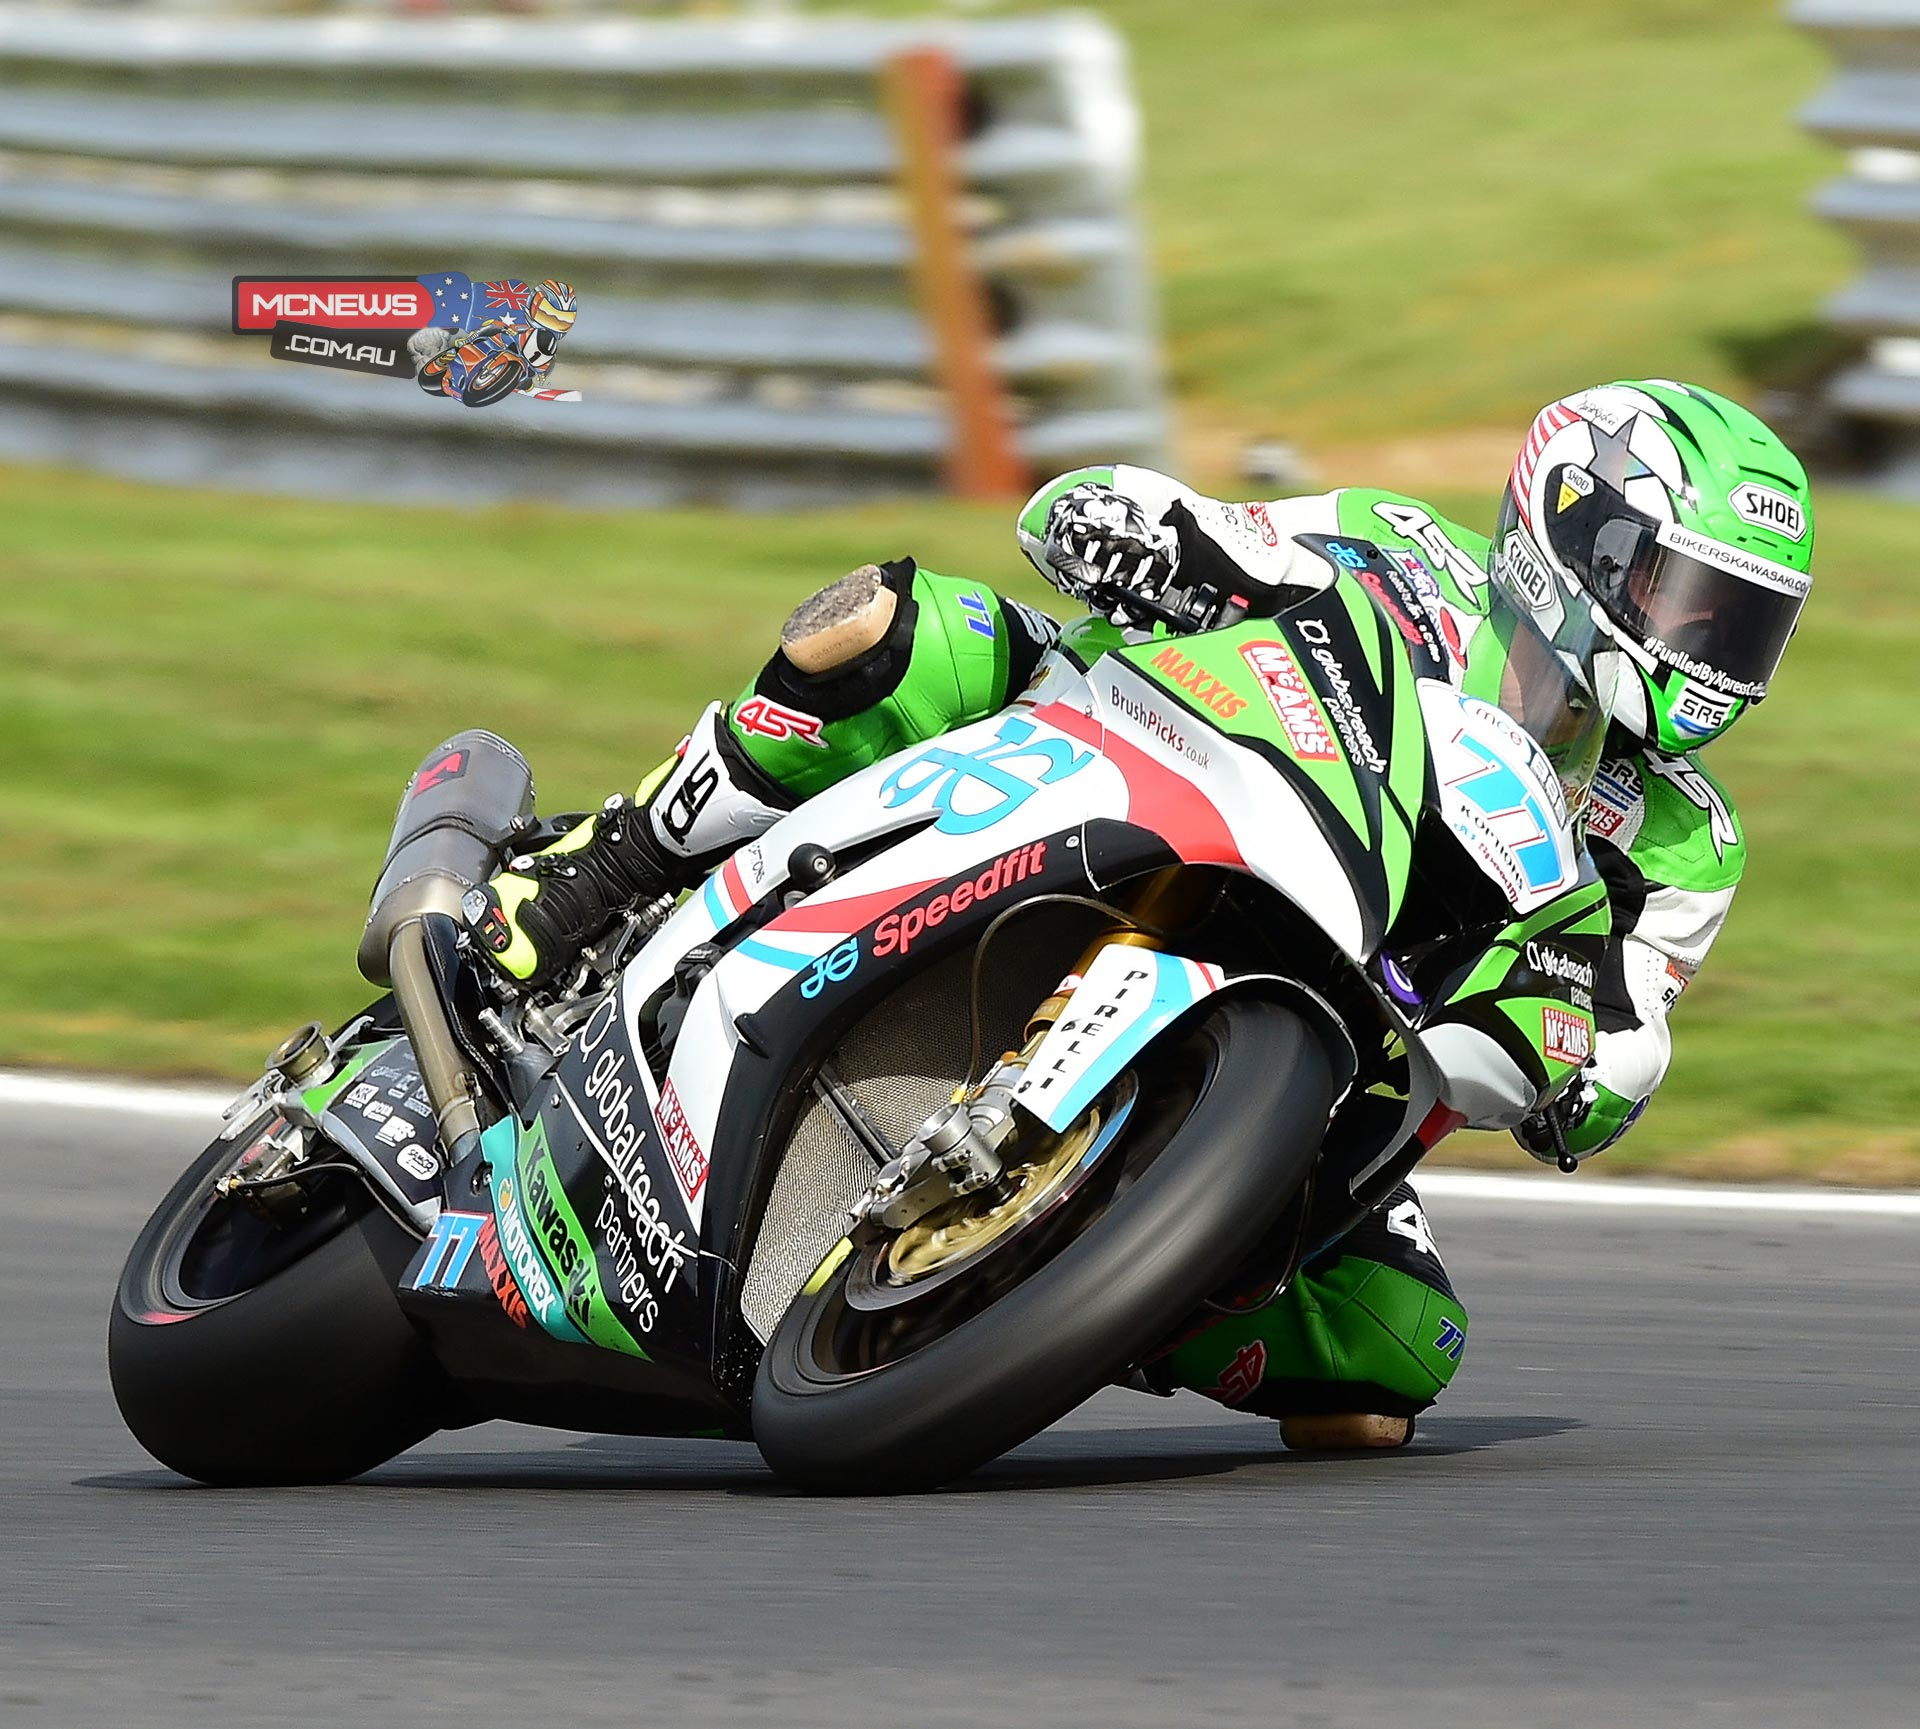 James Ellison edged out triple champion Ryuichi Kiyonari in the opening MCE Insurance British Superbike Championship free practice sessions at the second round of the season at Brands Hatc